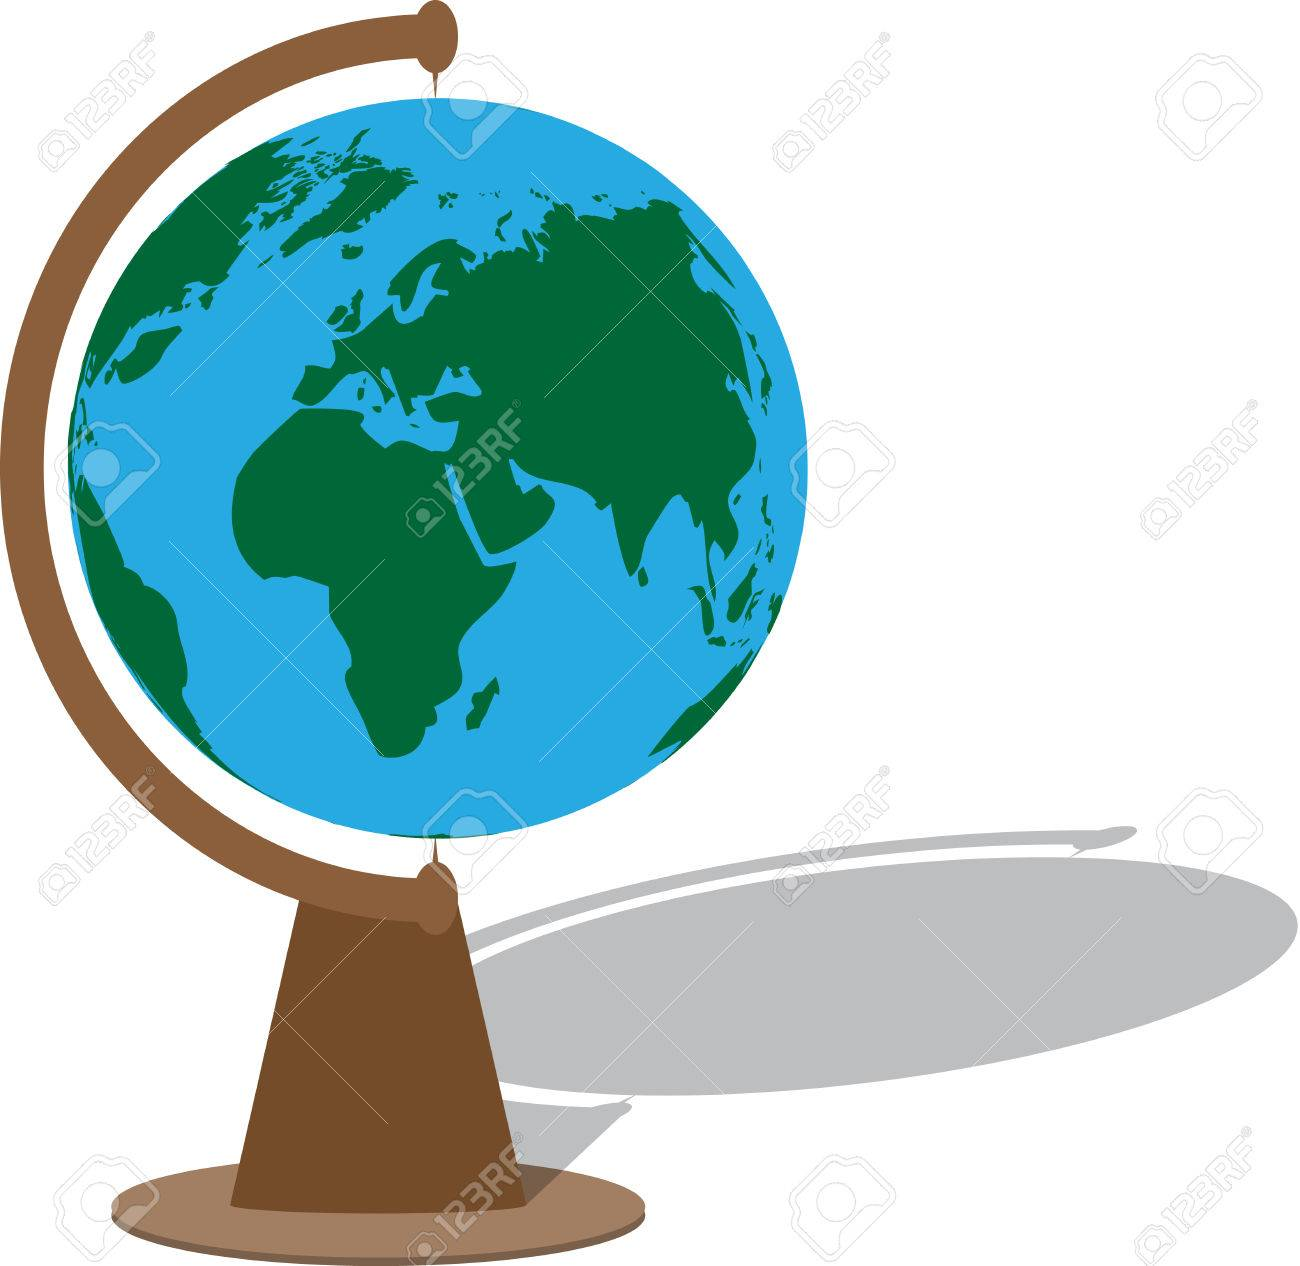 Globe with shadow globe planet sphere ball world earth map globe planet sphere ball world earth map geography gumiabroncs Choice Image